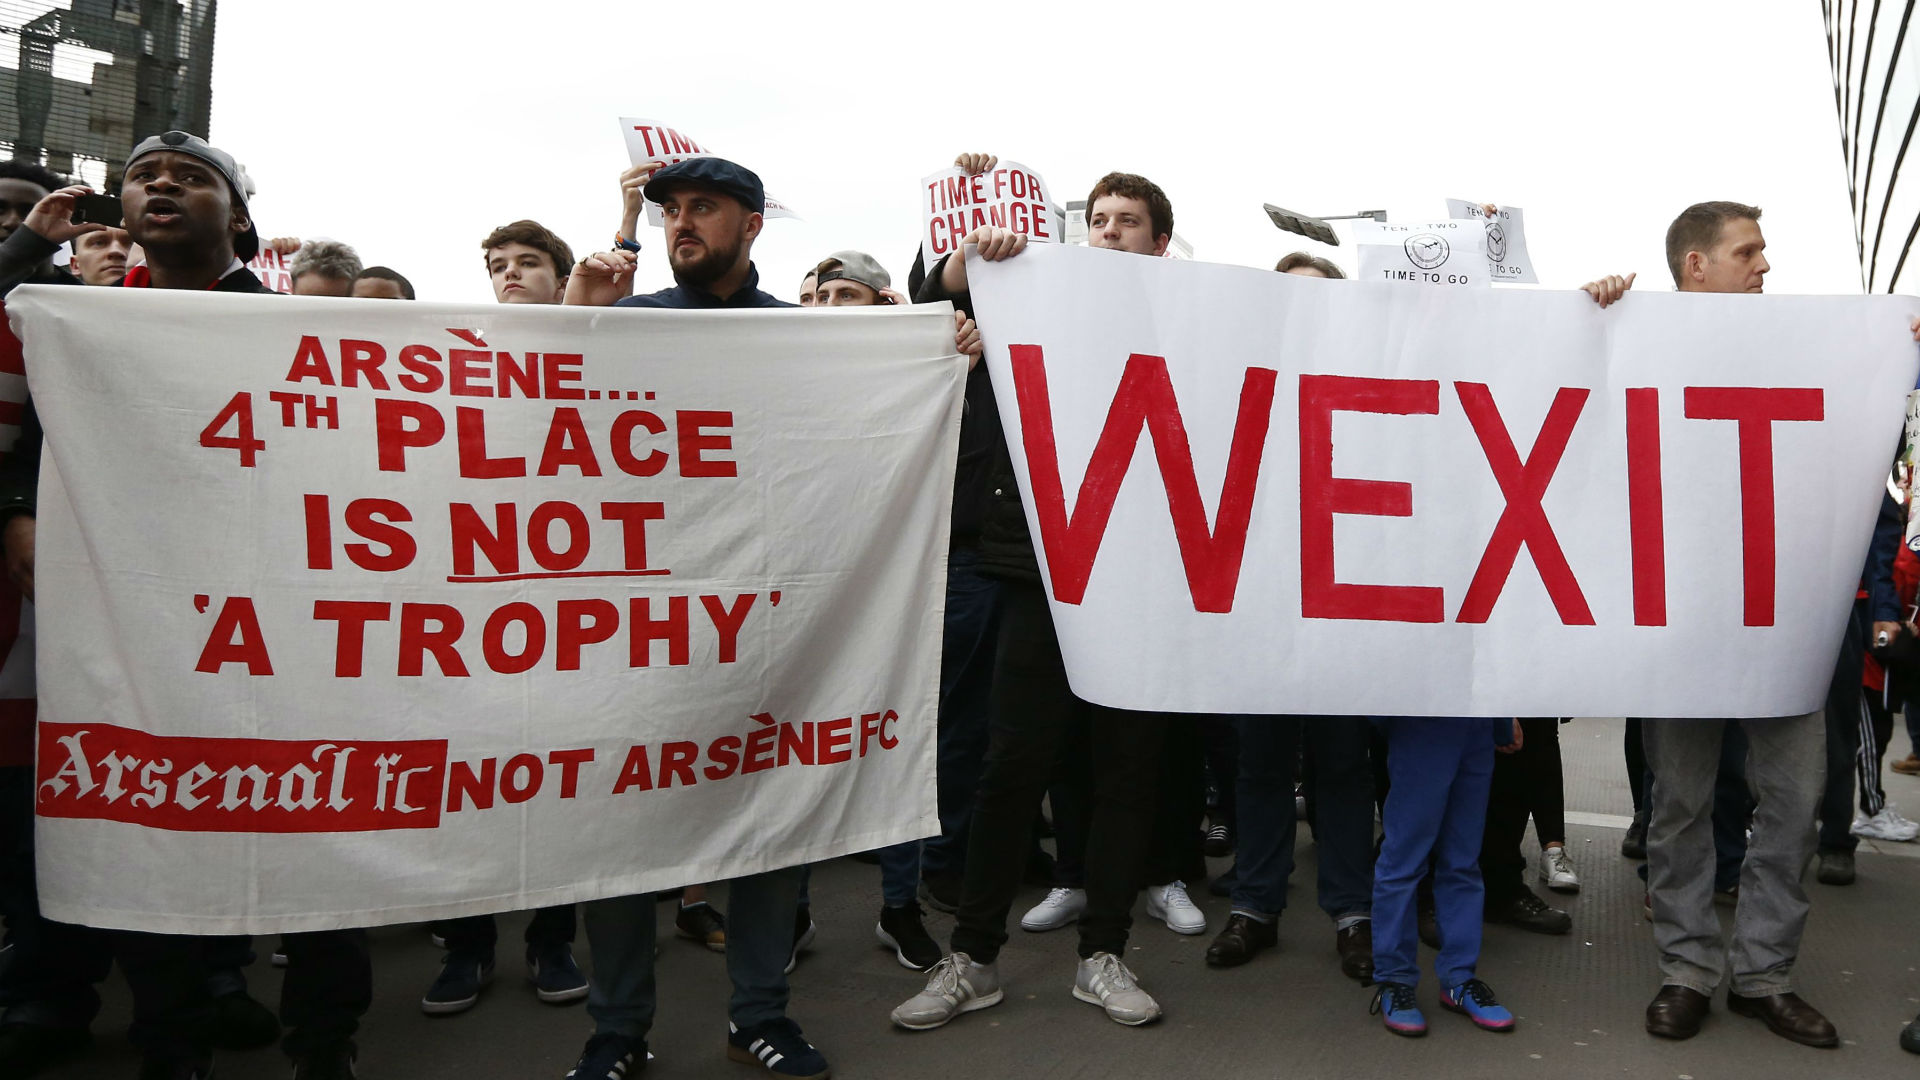 Wenger Wexit Arsenal